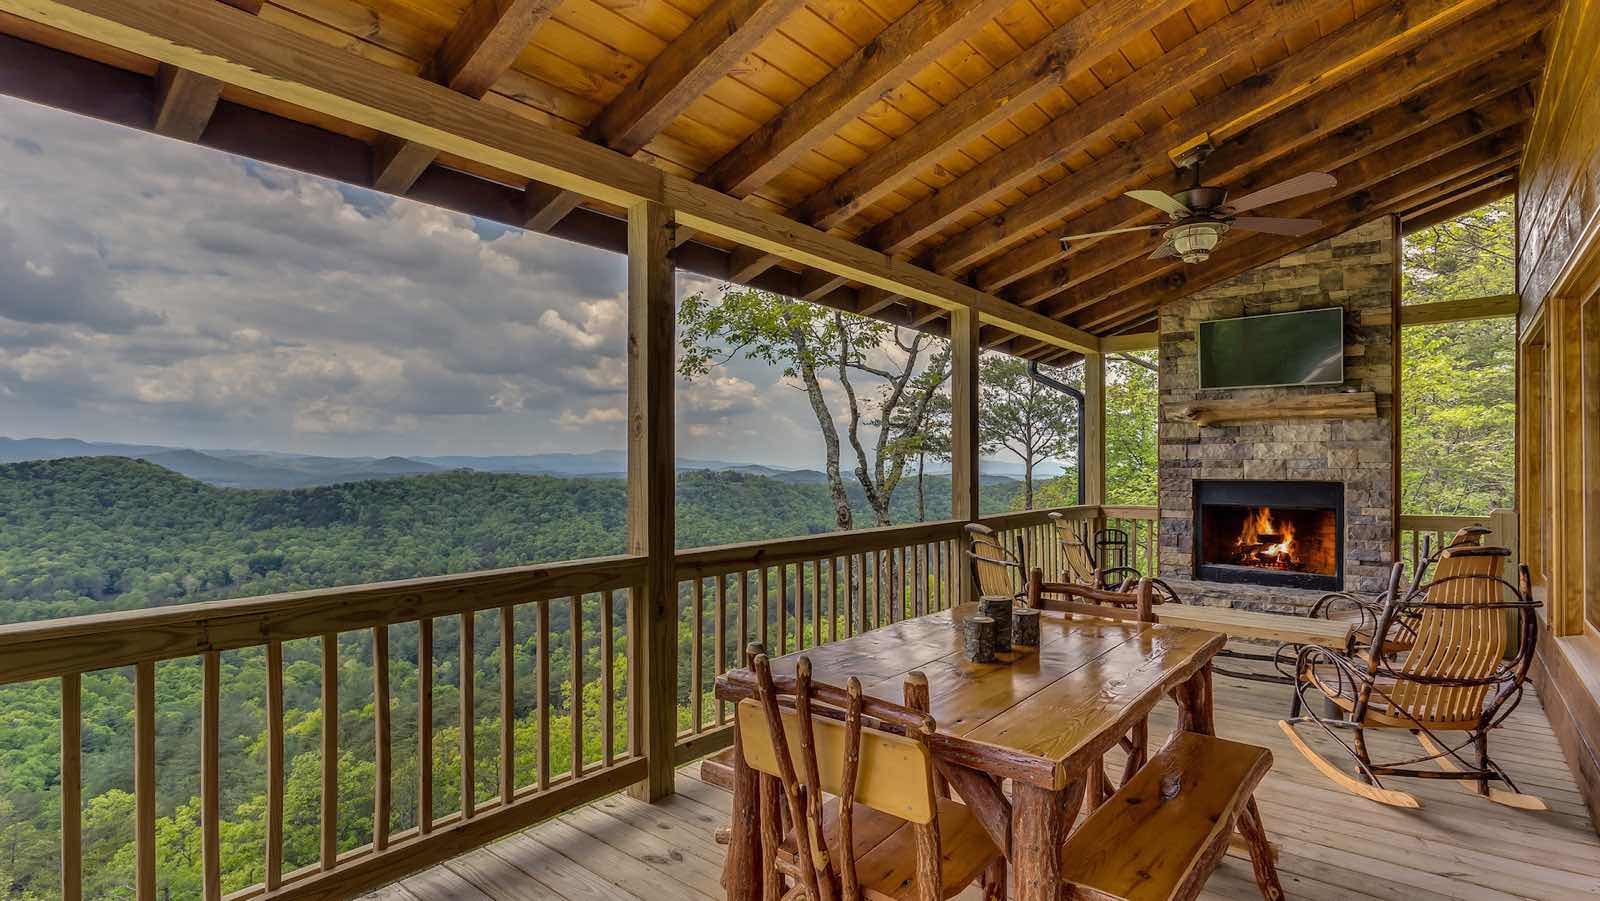 vacation rentals antler peak in cabins ha cabin helen min ga from property sautee a luxury